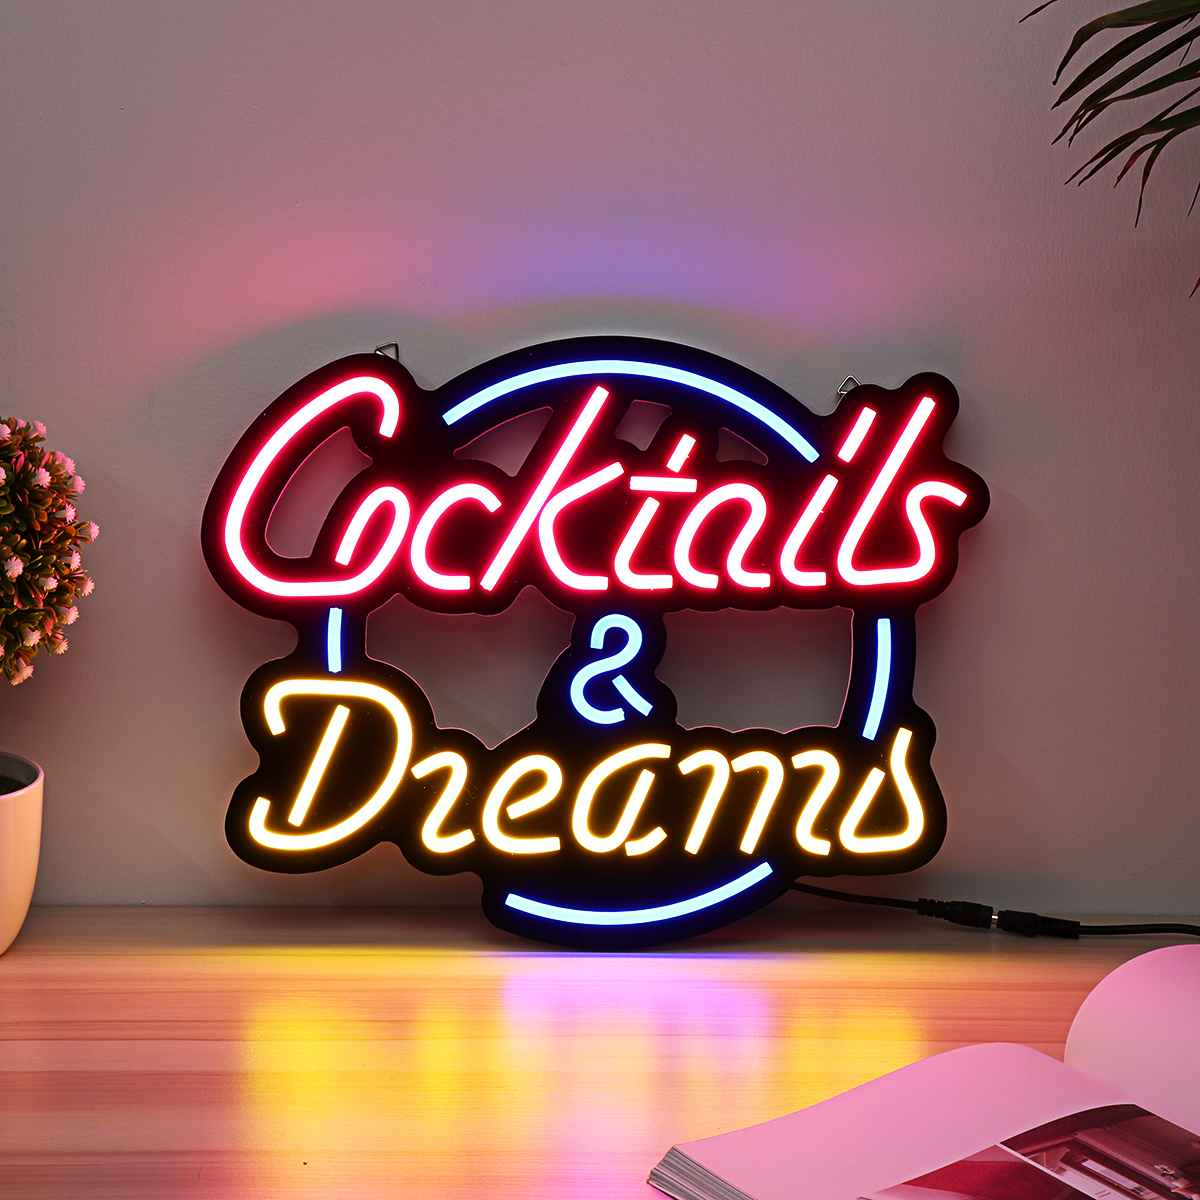 Cocktail Dream Real Glass Tube Neon Light Sign Tavern Beer Bar Pub Decoration Neon Lamp Board Commercial Lighting 17